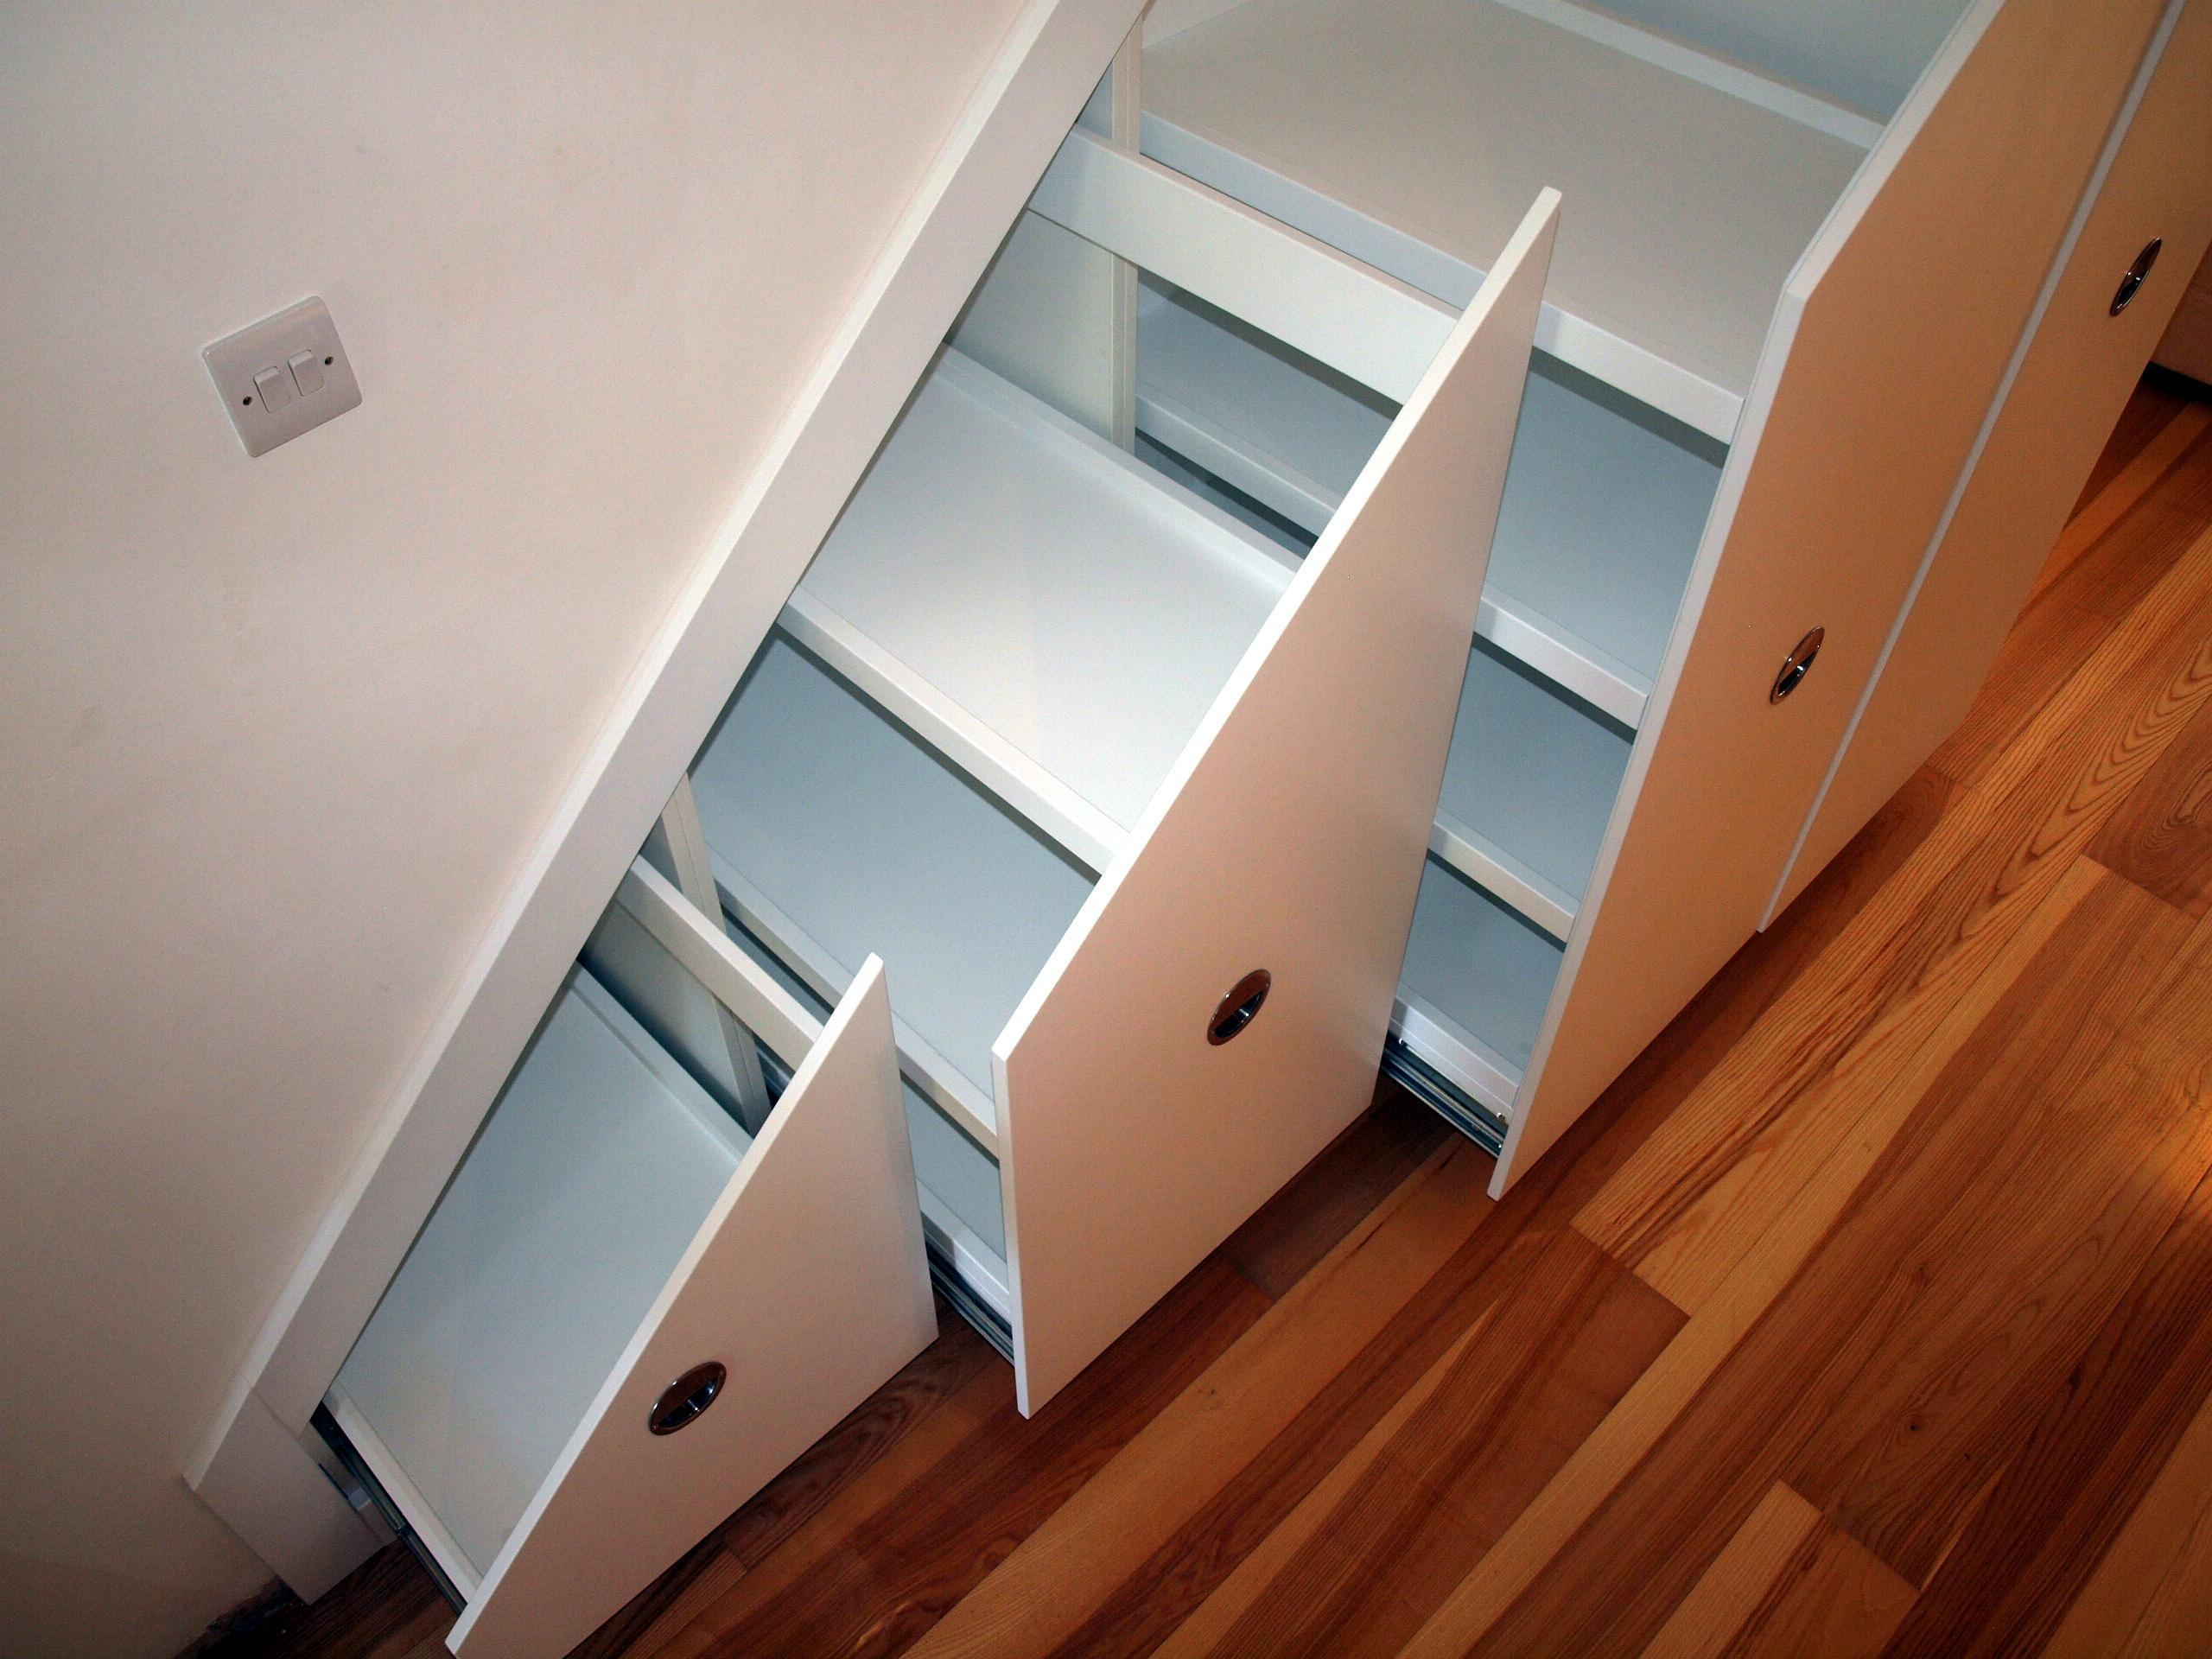 Ikea Tiroir Dressing Understairs Storage Solutions, London | Avar Furniture